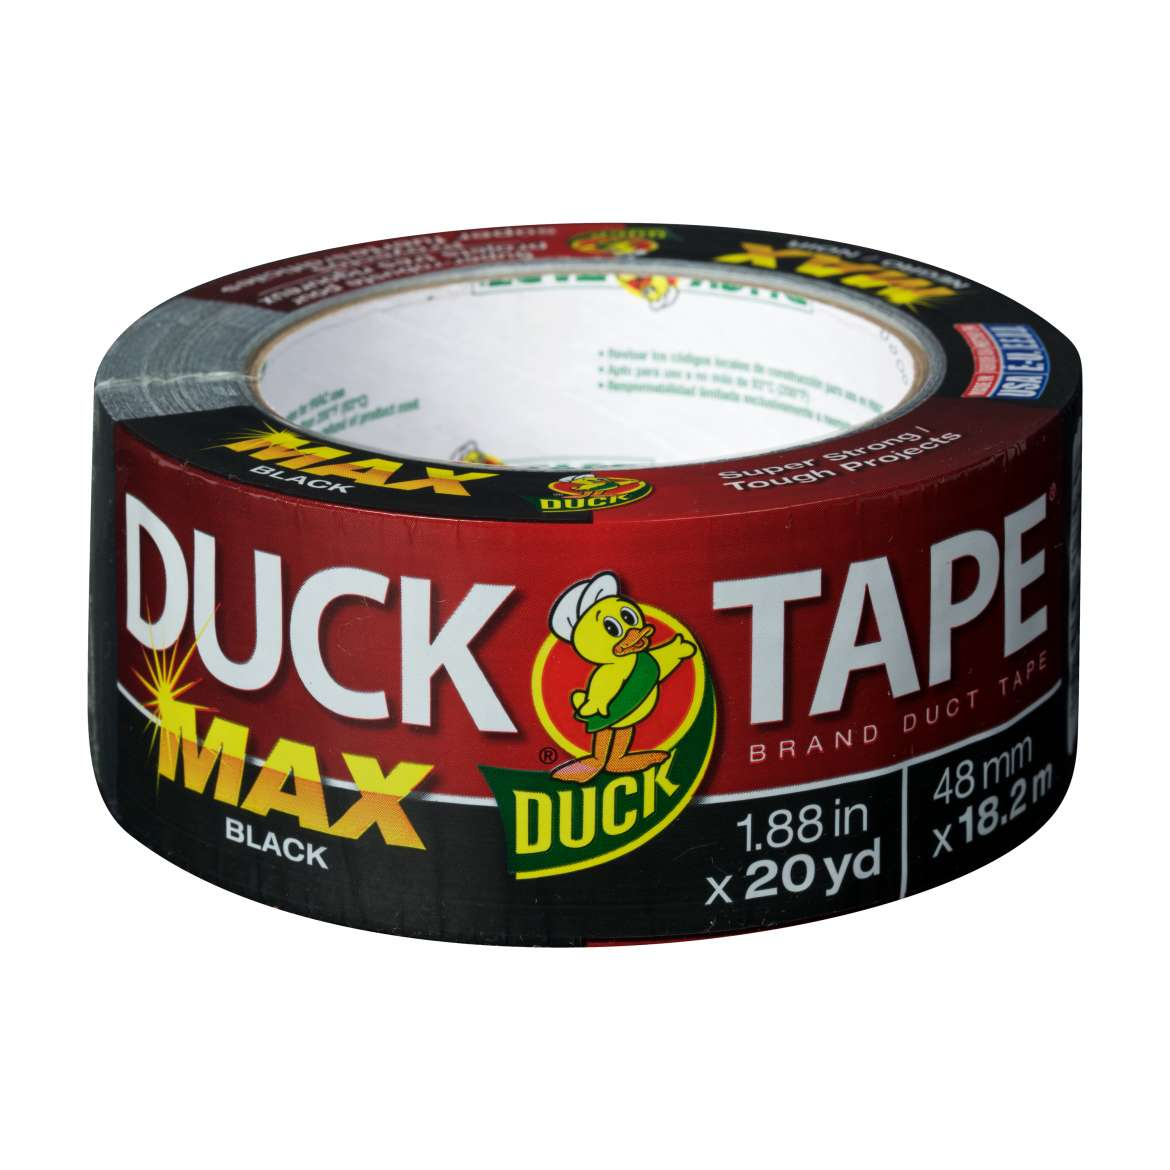 MAX Strength Duck Tape® Brand Duct Tape - Black, 1.88 in. x 20 yd. Image